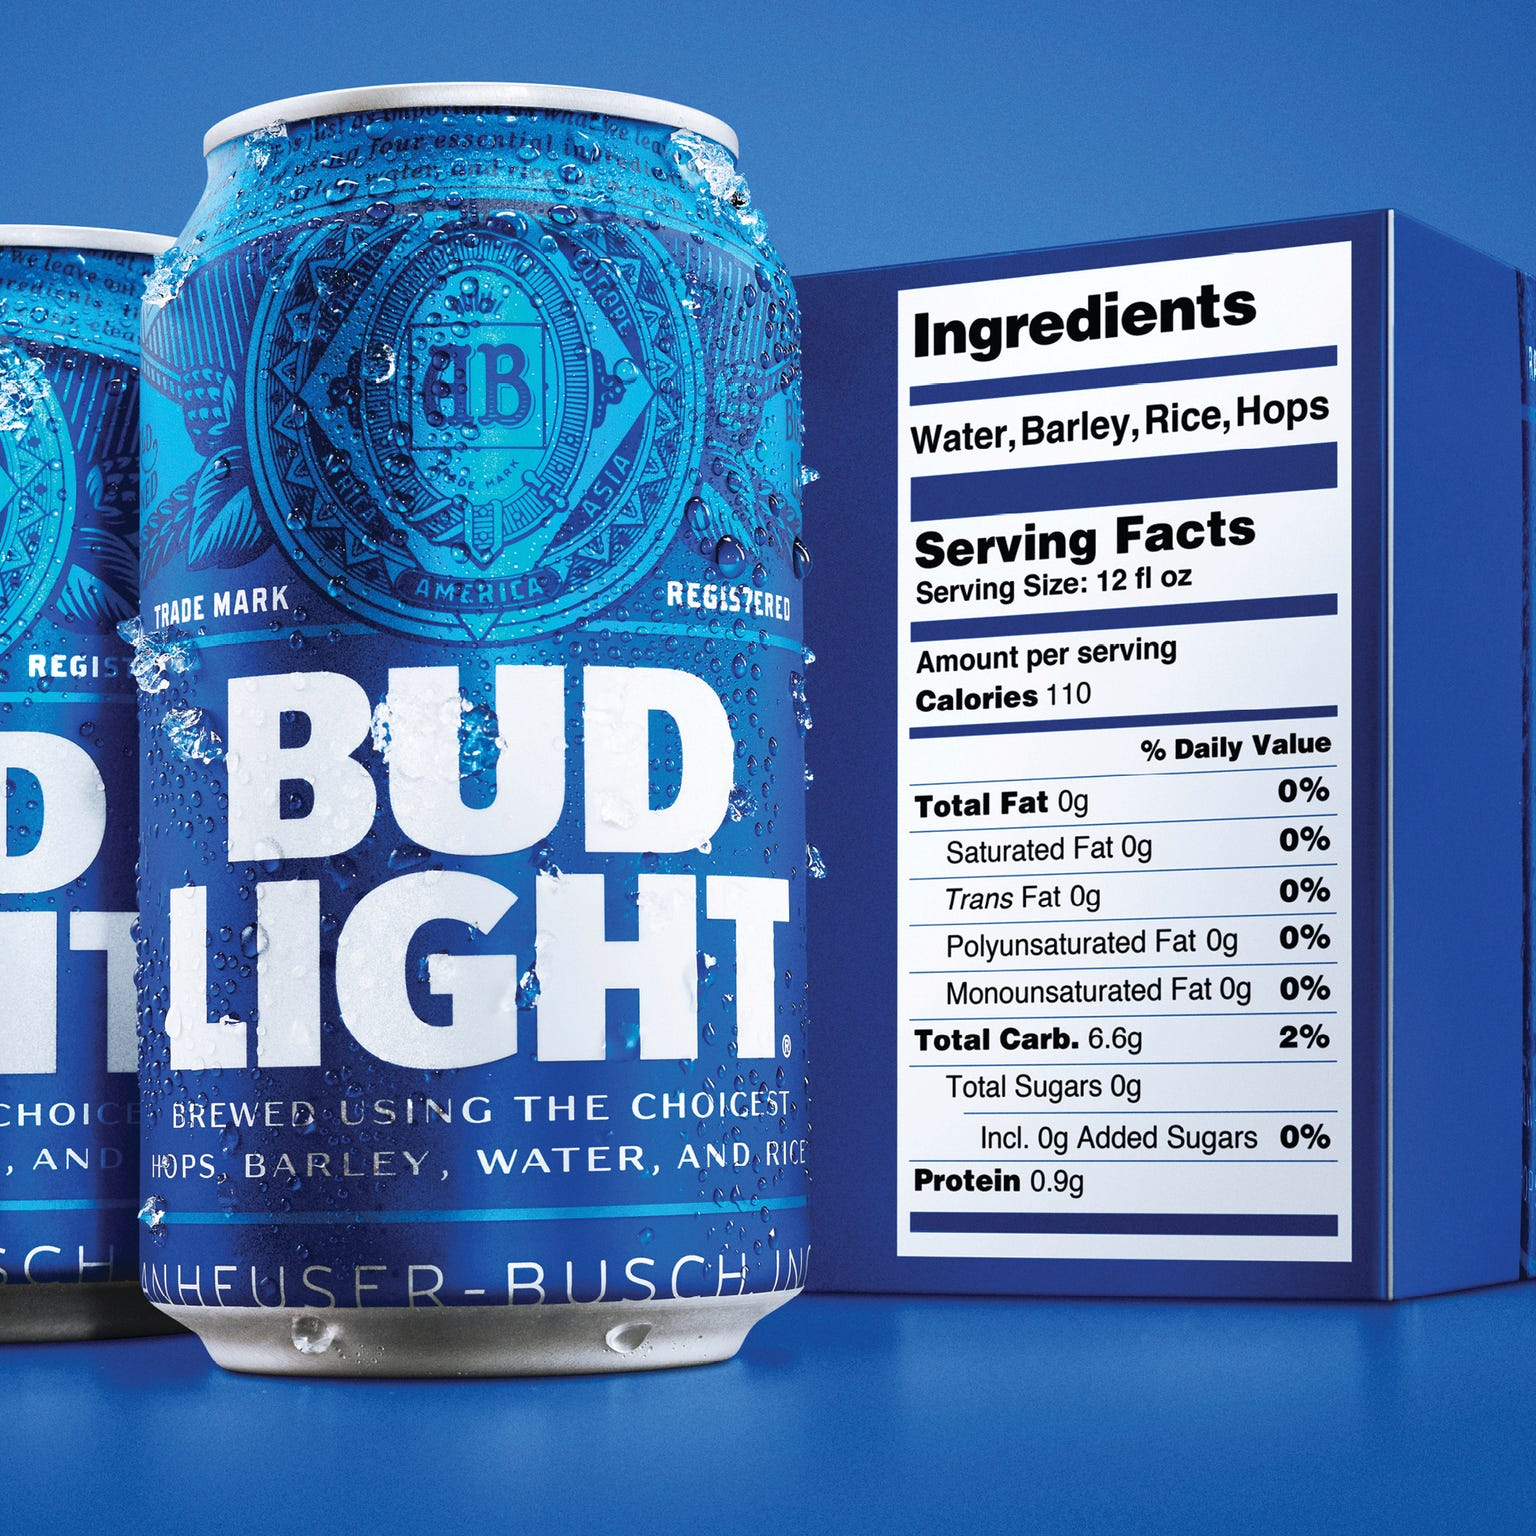 Big beer companies fight over Iowa farmers in the aftermath of Bud Light's Super Bowl ad